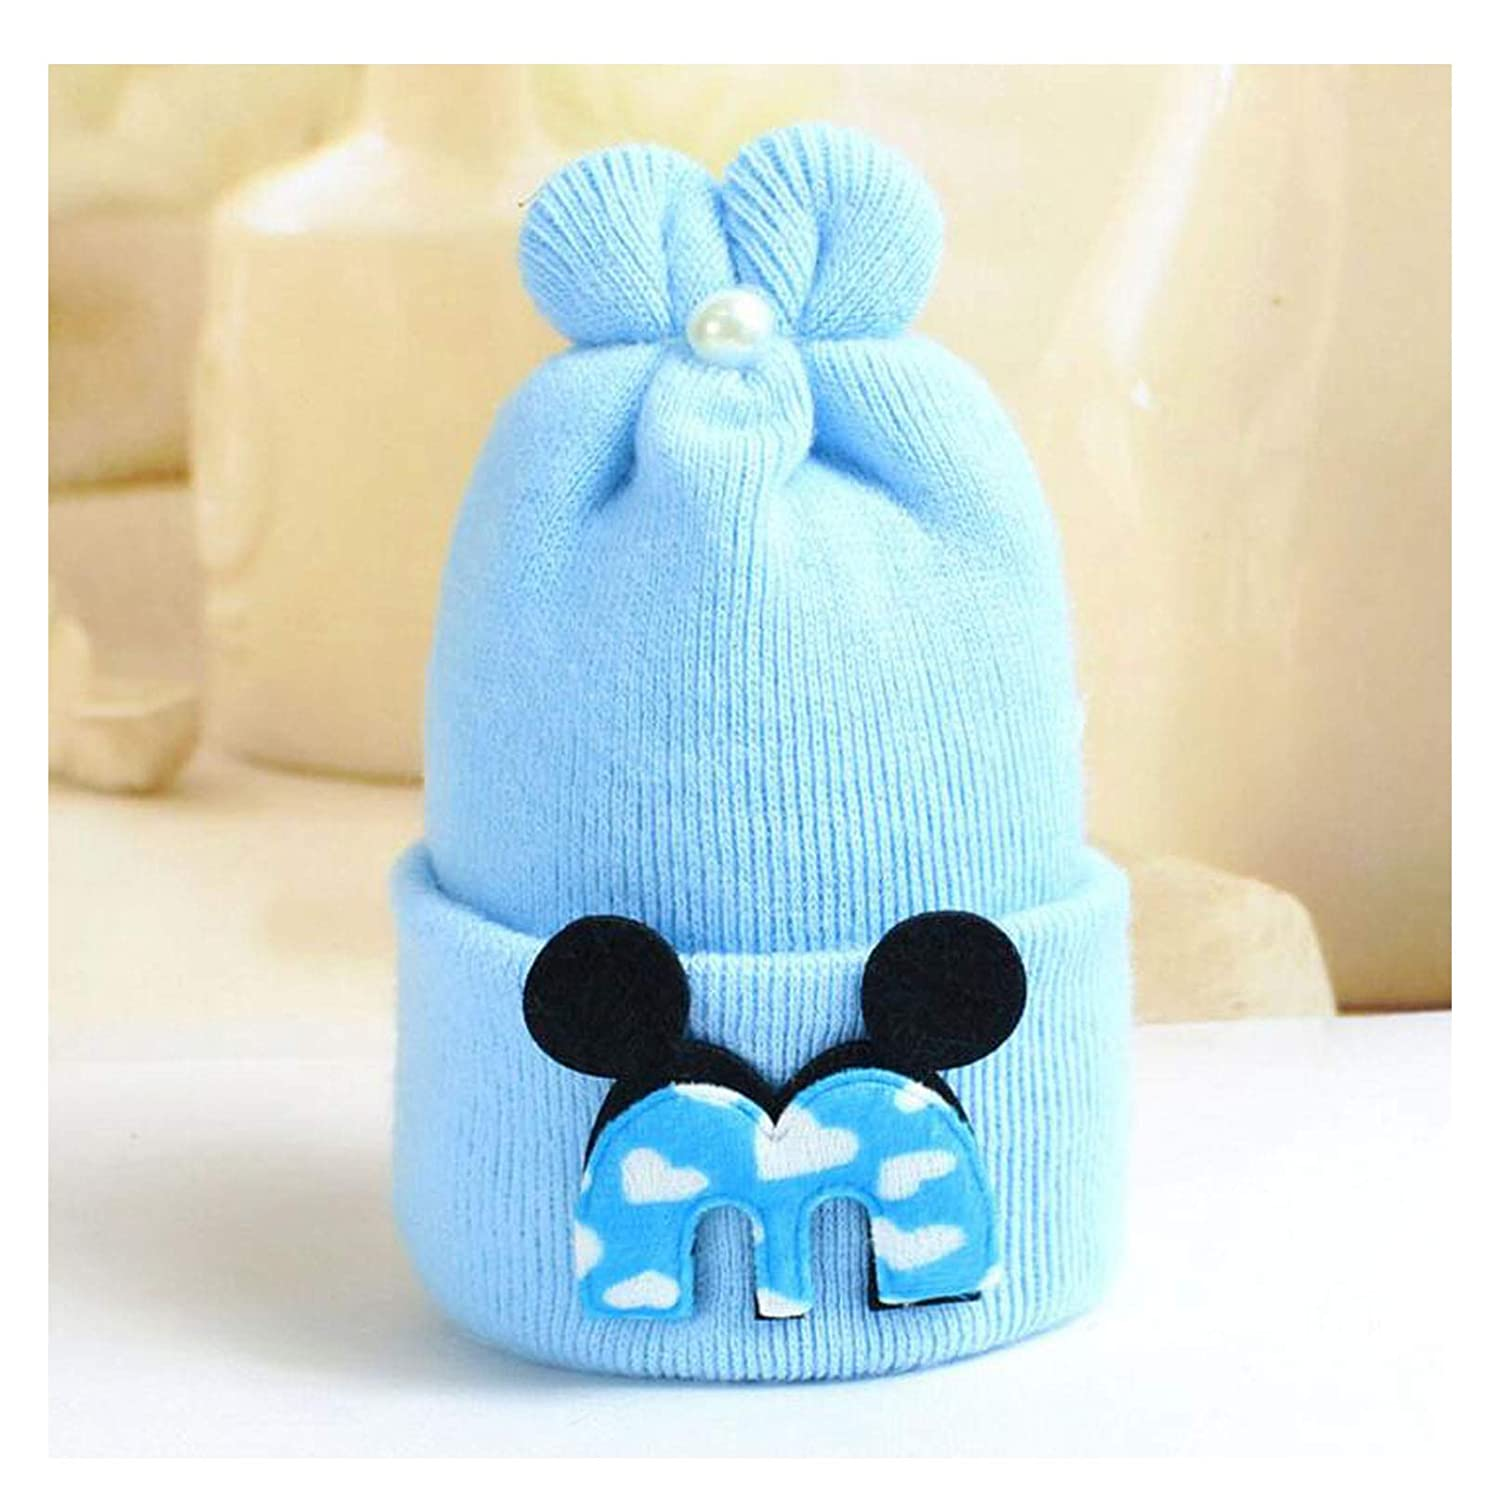 ba2dbf3795f Amazon.com  Winter Toddler Knitted Baby Caps Adorable Rabbit Long Ear Hat  Baby Bunny Beanie Cap Photo Props Hats  Clothing